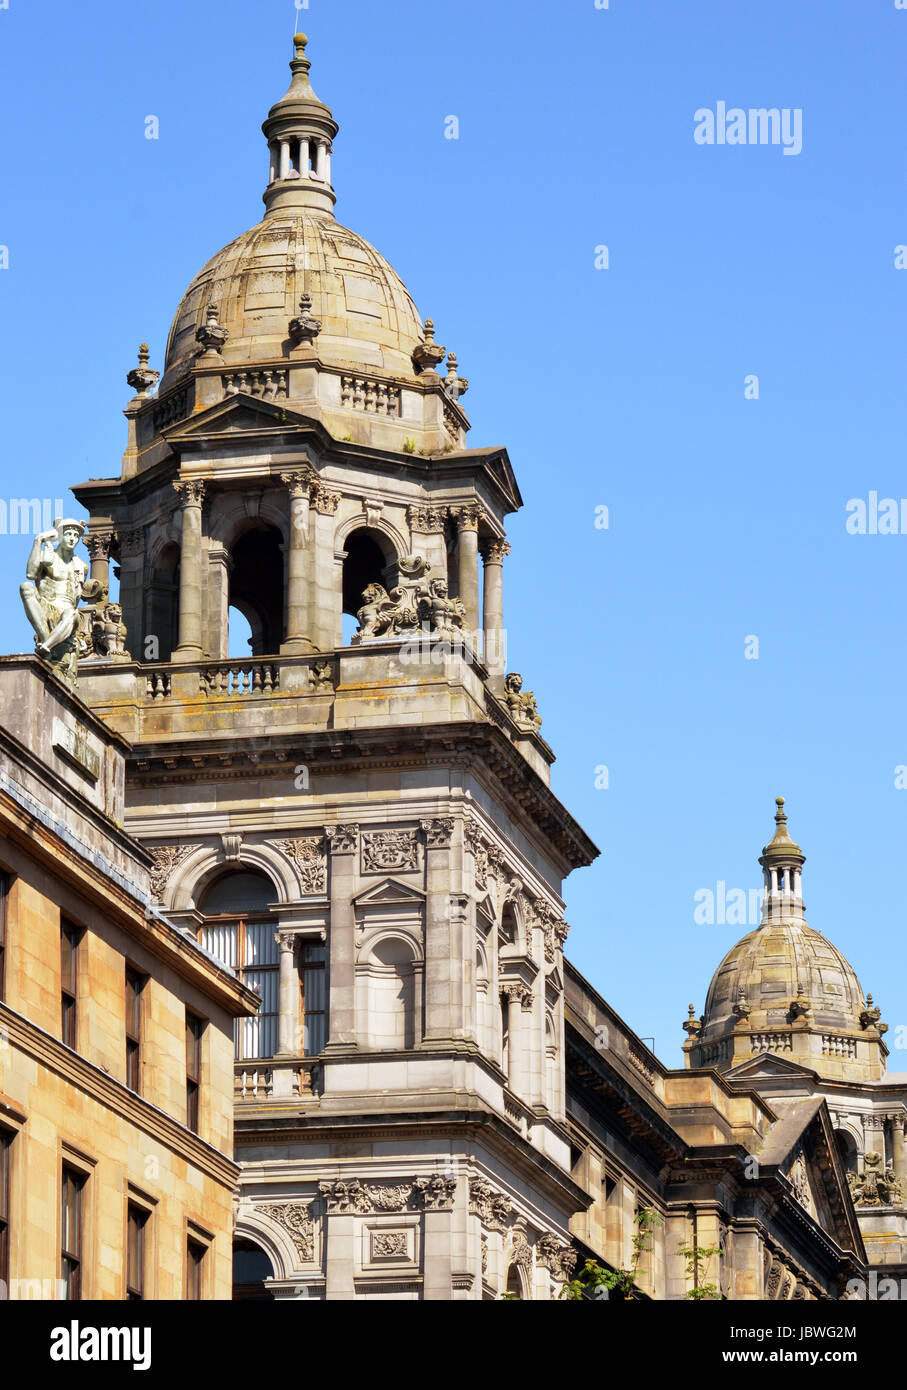 Detail of two towers from Glasgow City Chambers, Scotland, he building which serves as the headquarters of local - Stock Image